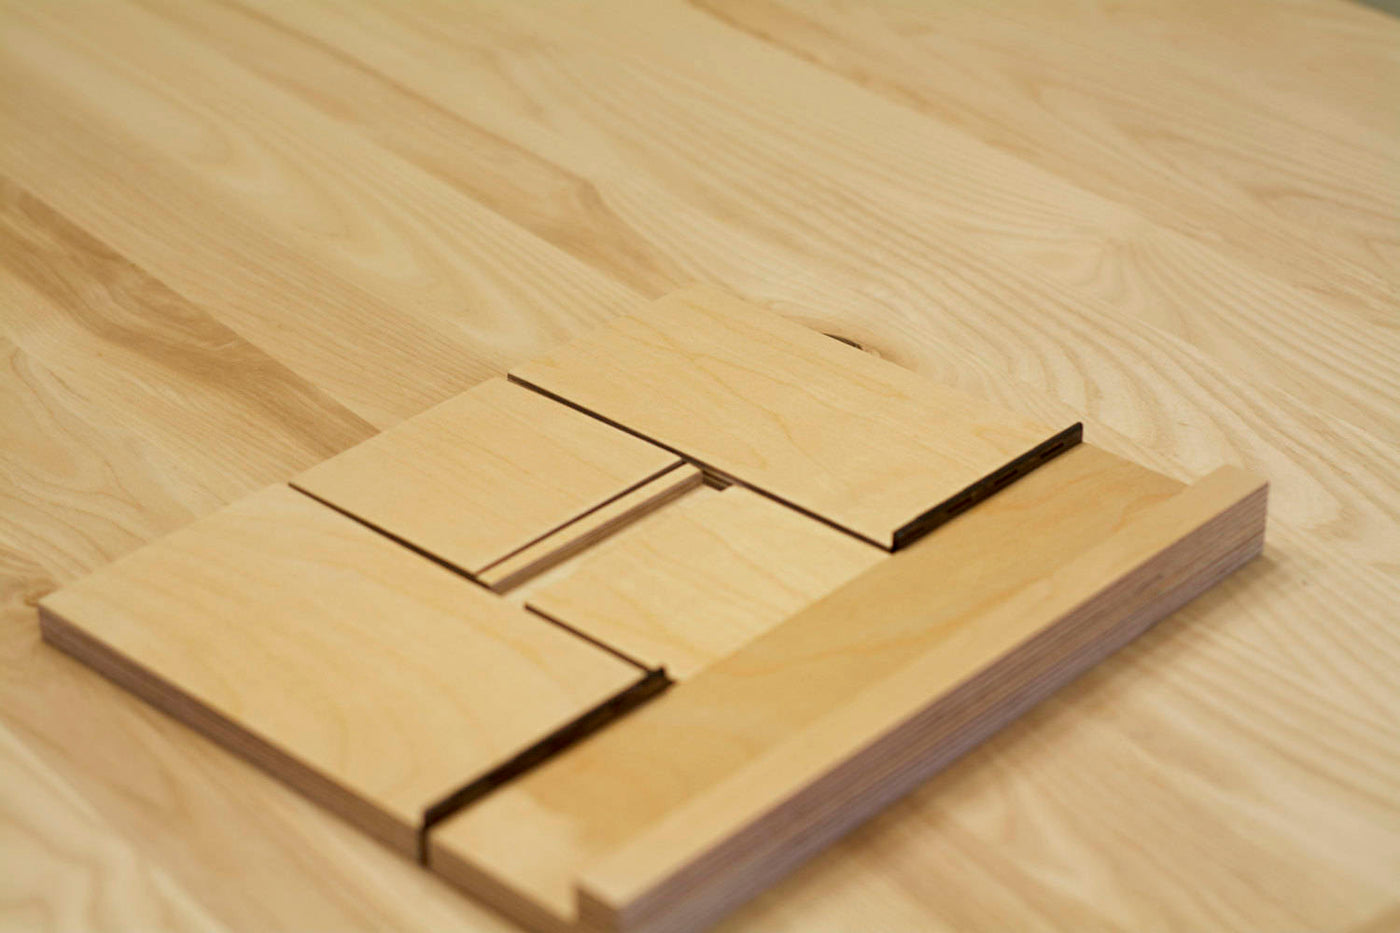 Wooden Cookbook Or Ipad Stand In Birch Plywood Adh Woodwork